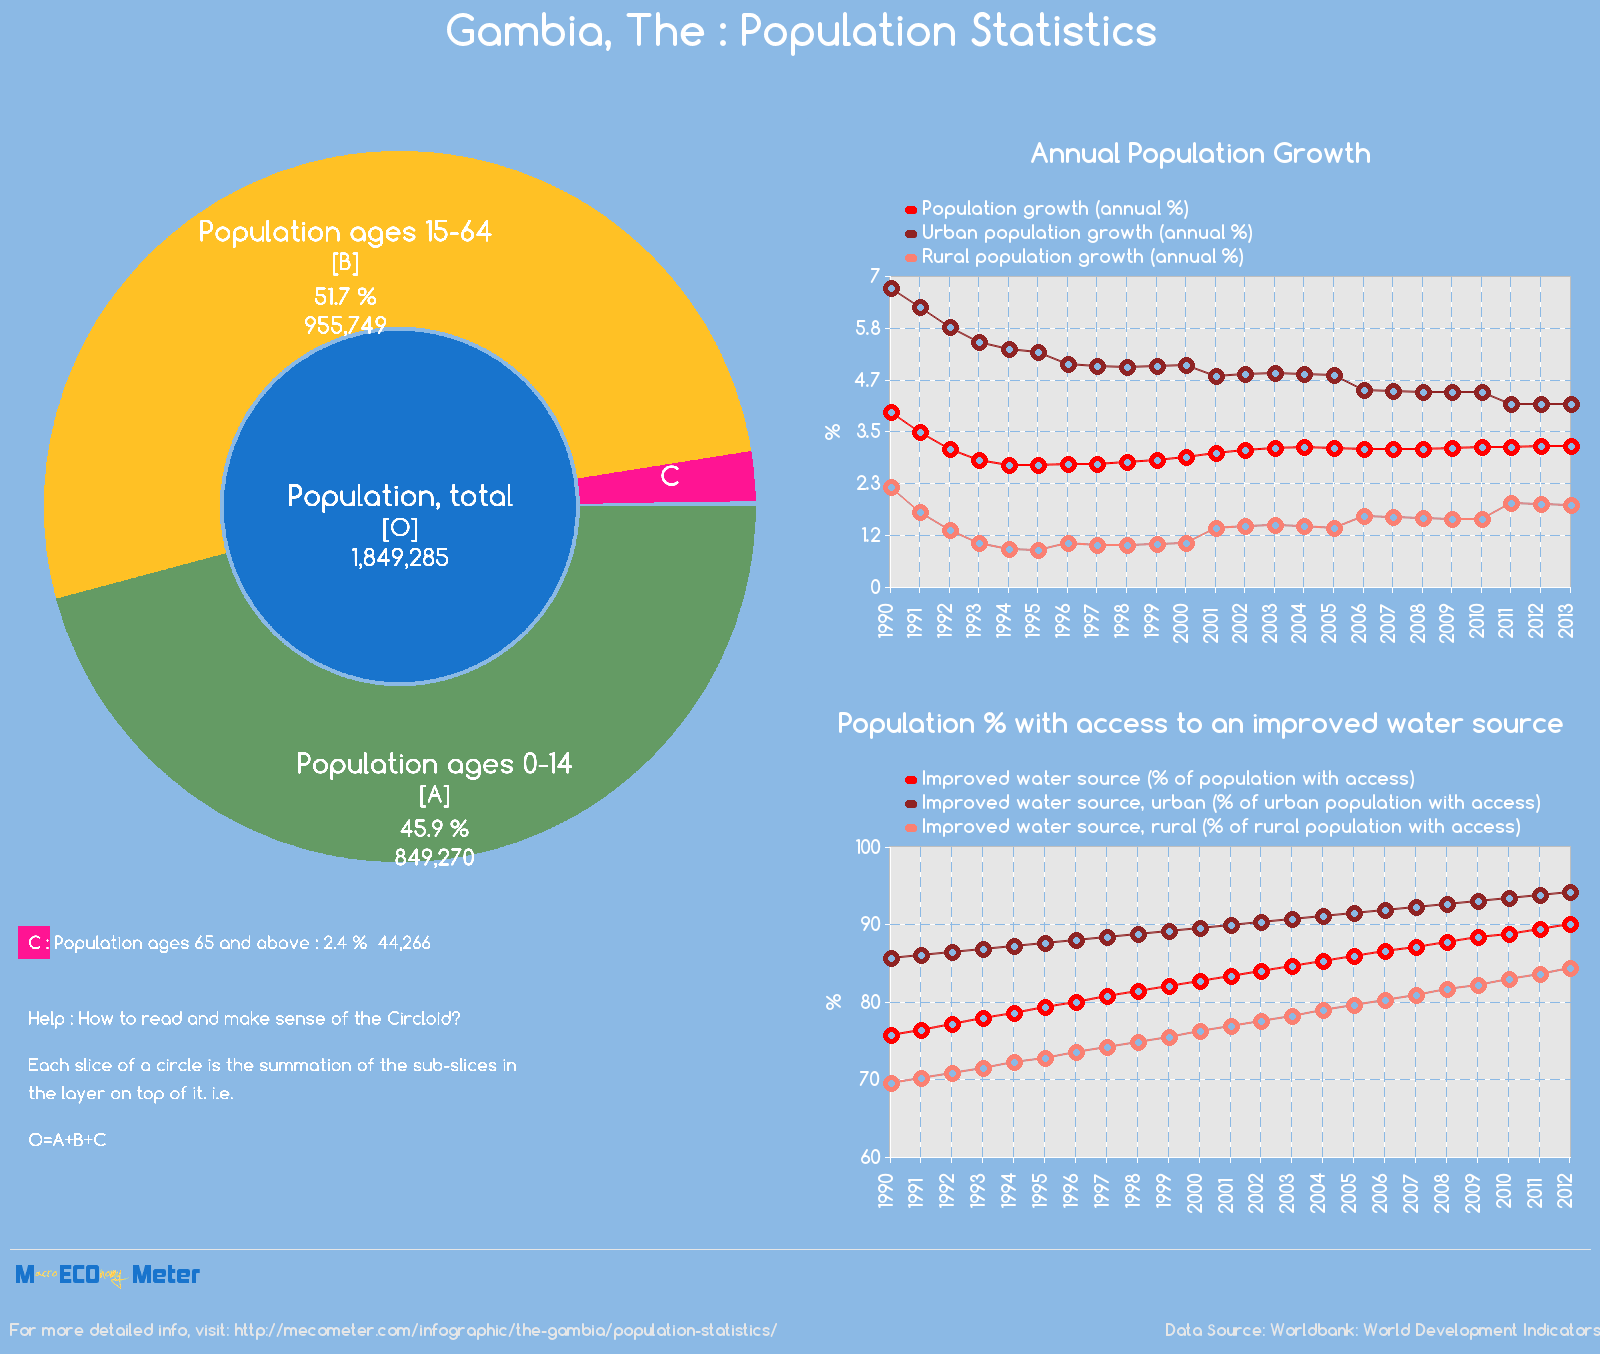 Gambia, The : Population Statistics